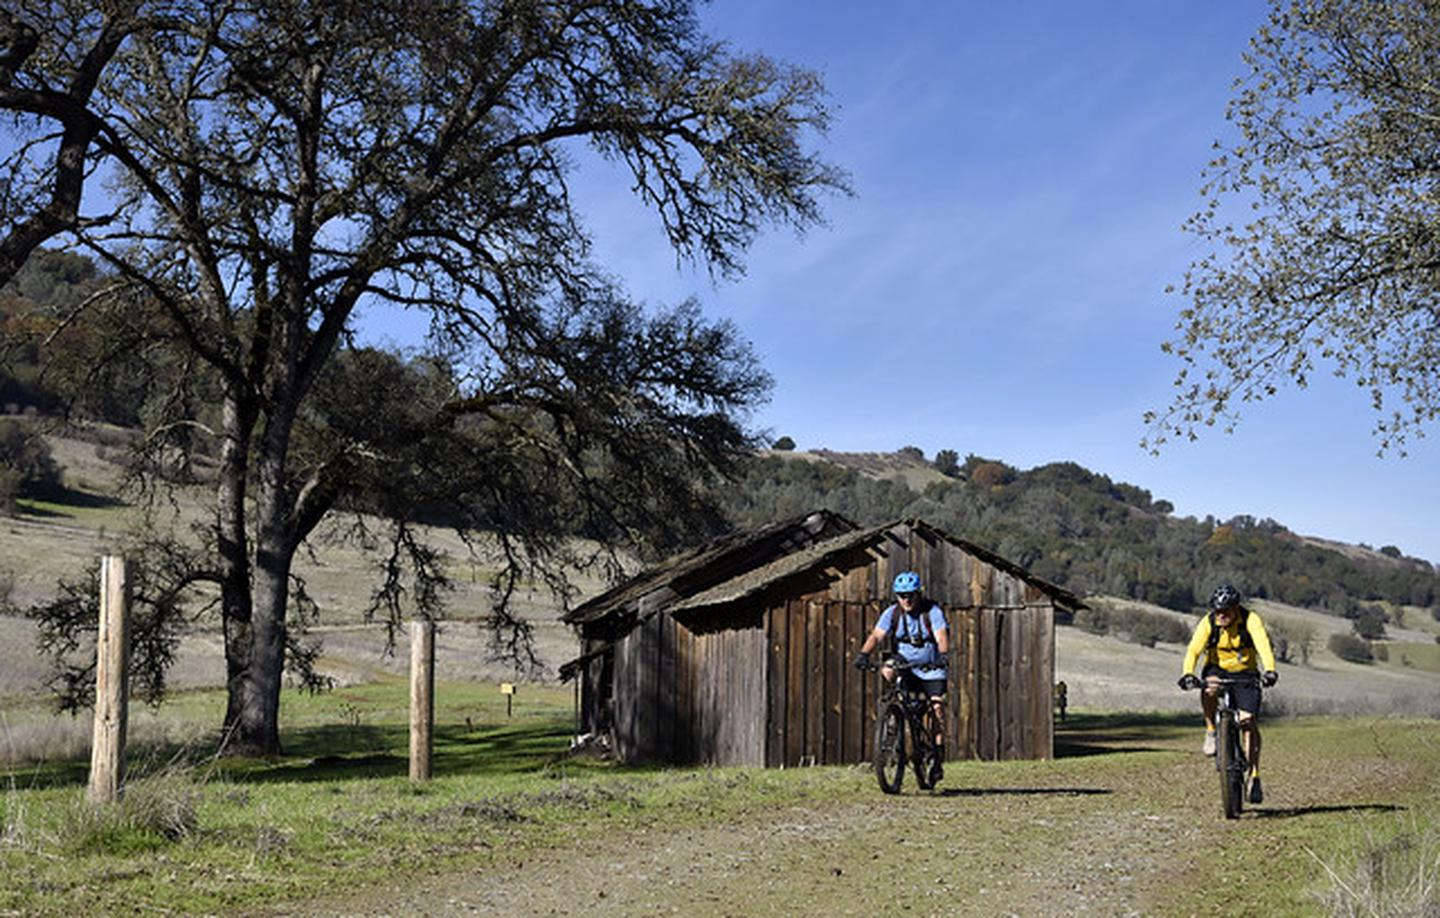 Cronan RanchMountain bikers at Cronan Ranch